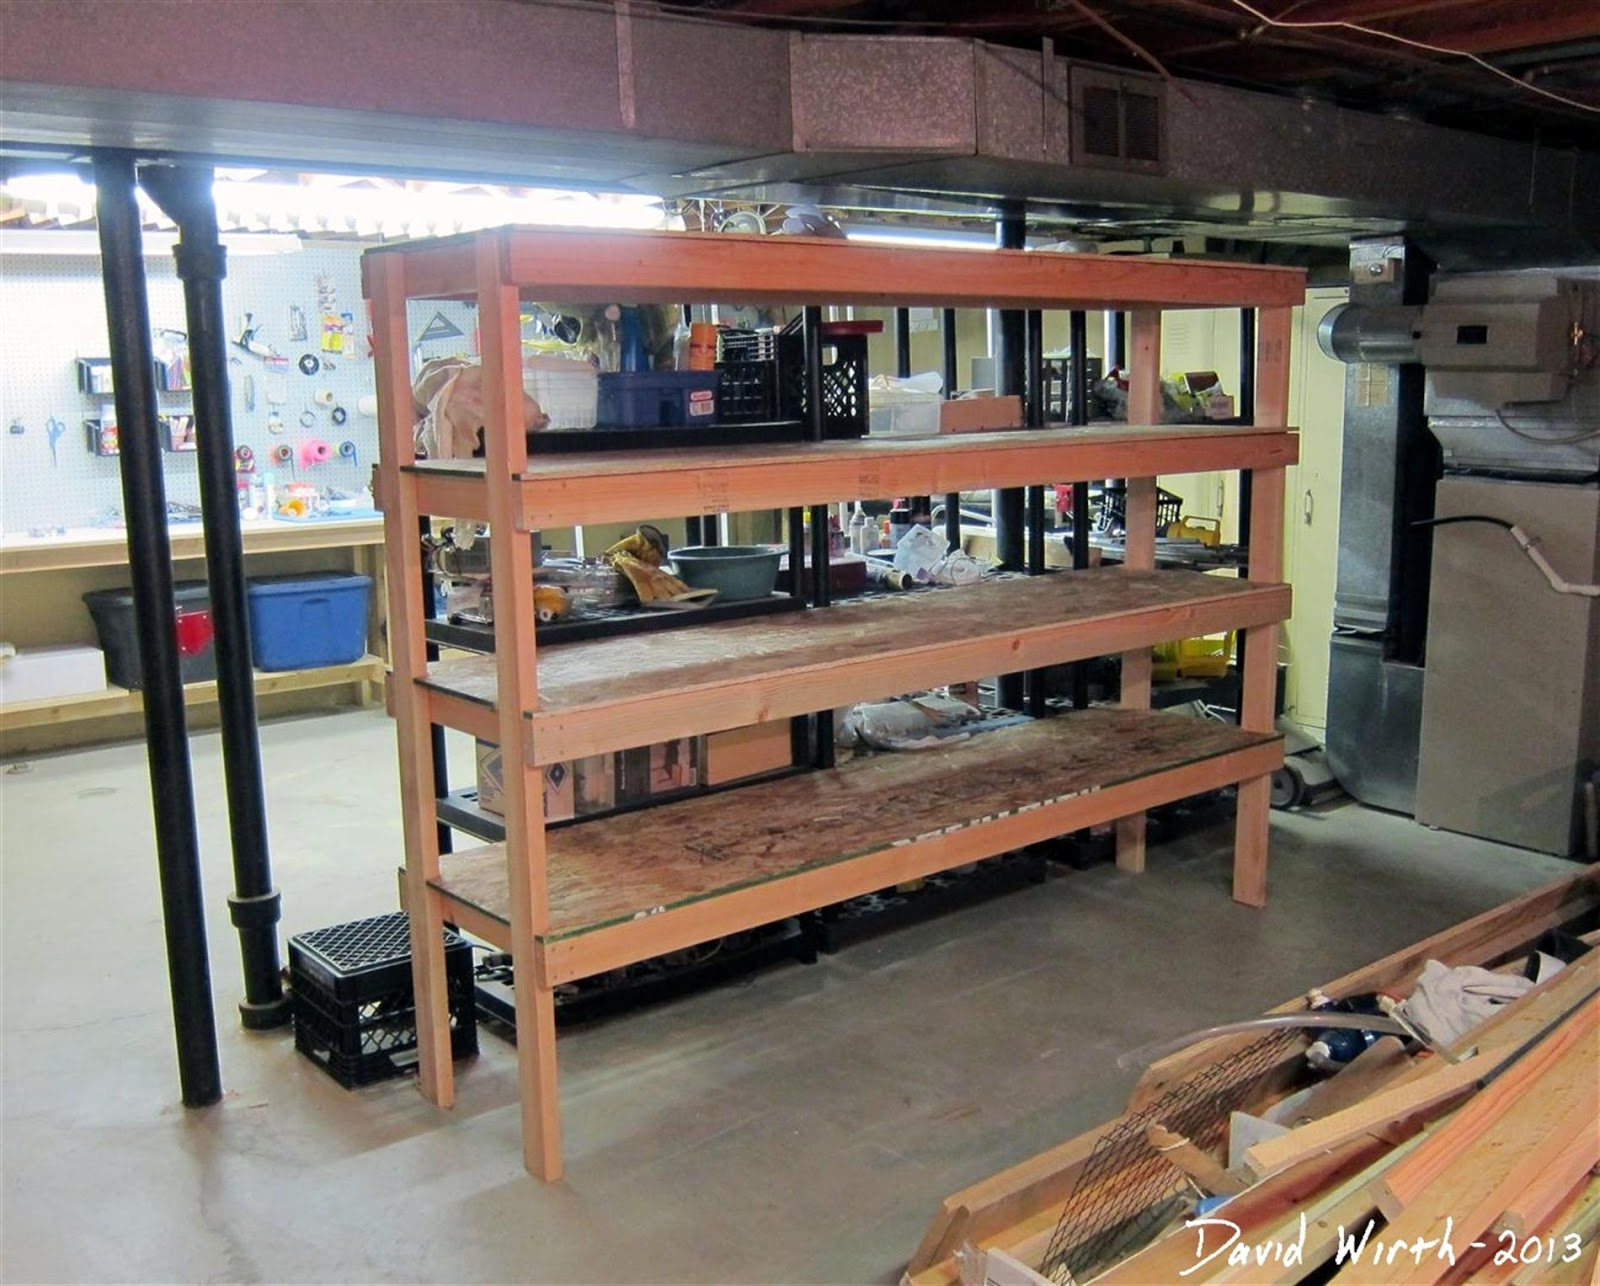 Charmant Basement Shelf, Storage, Organize, How To Make, Wood Shelf, Build,